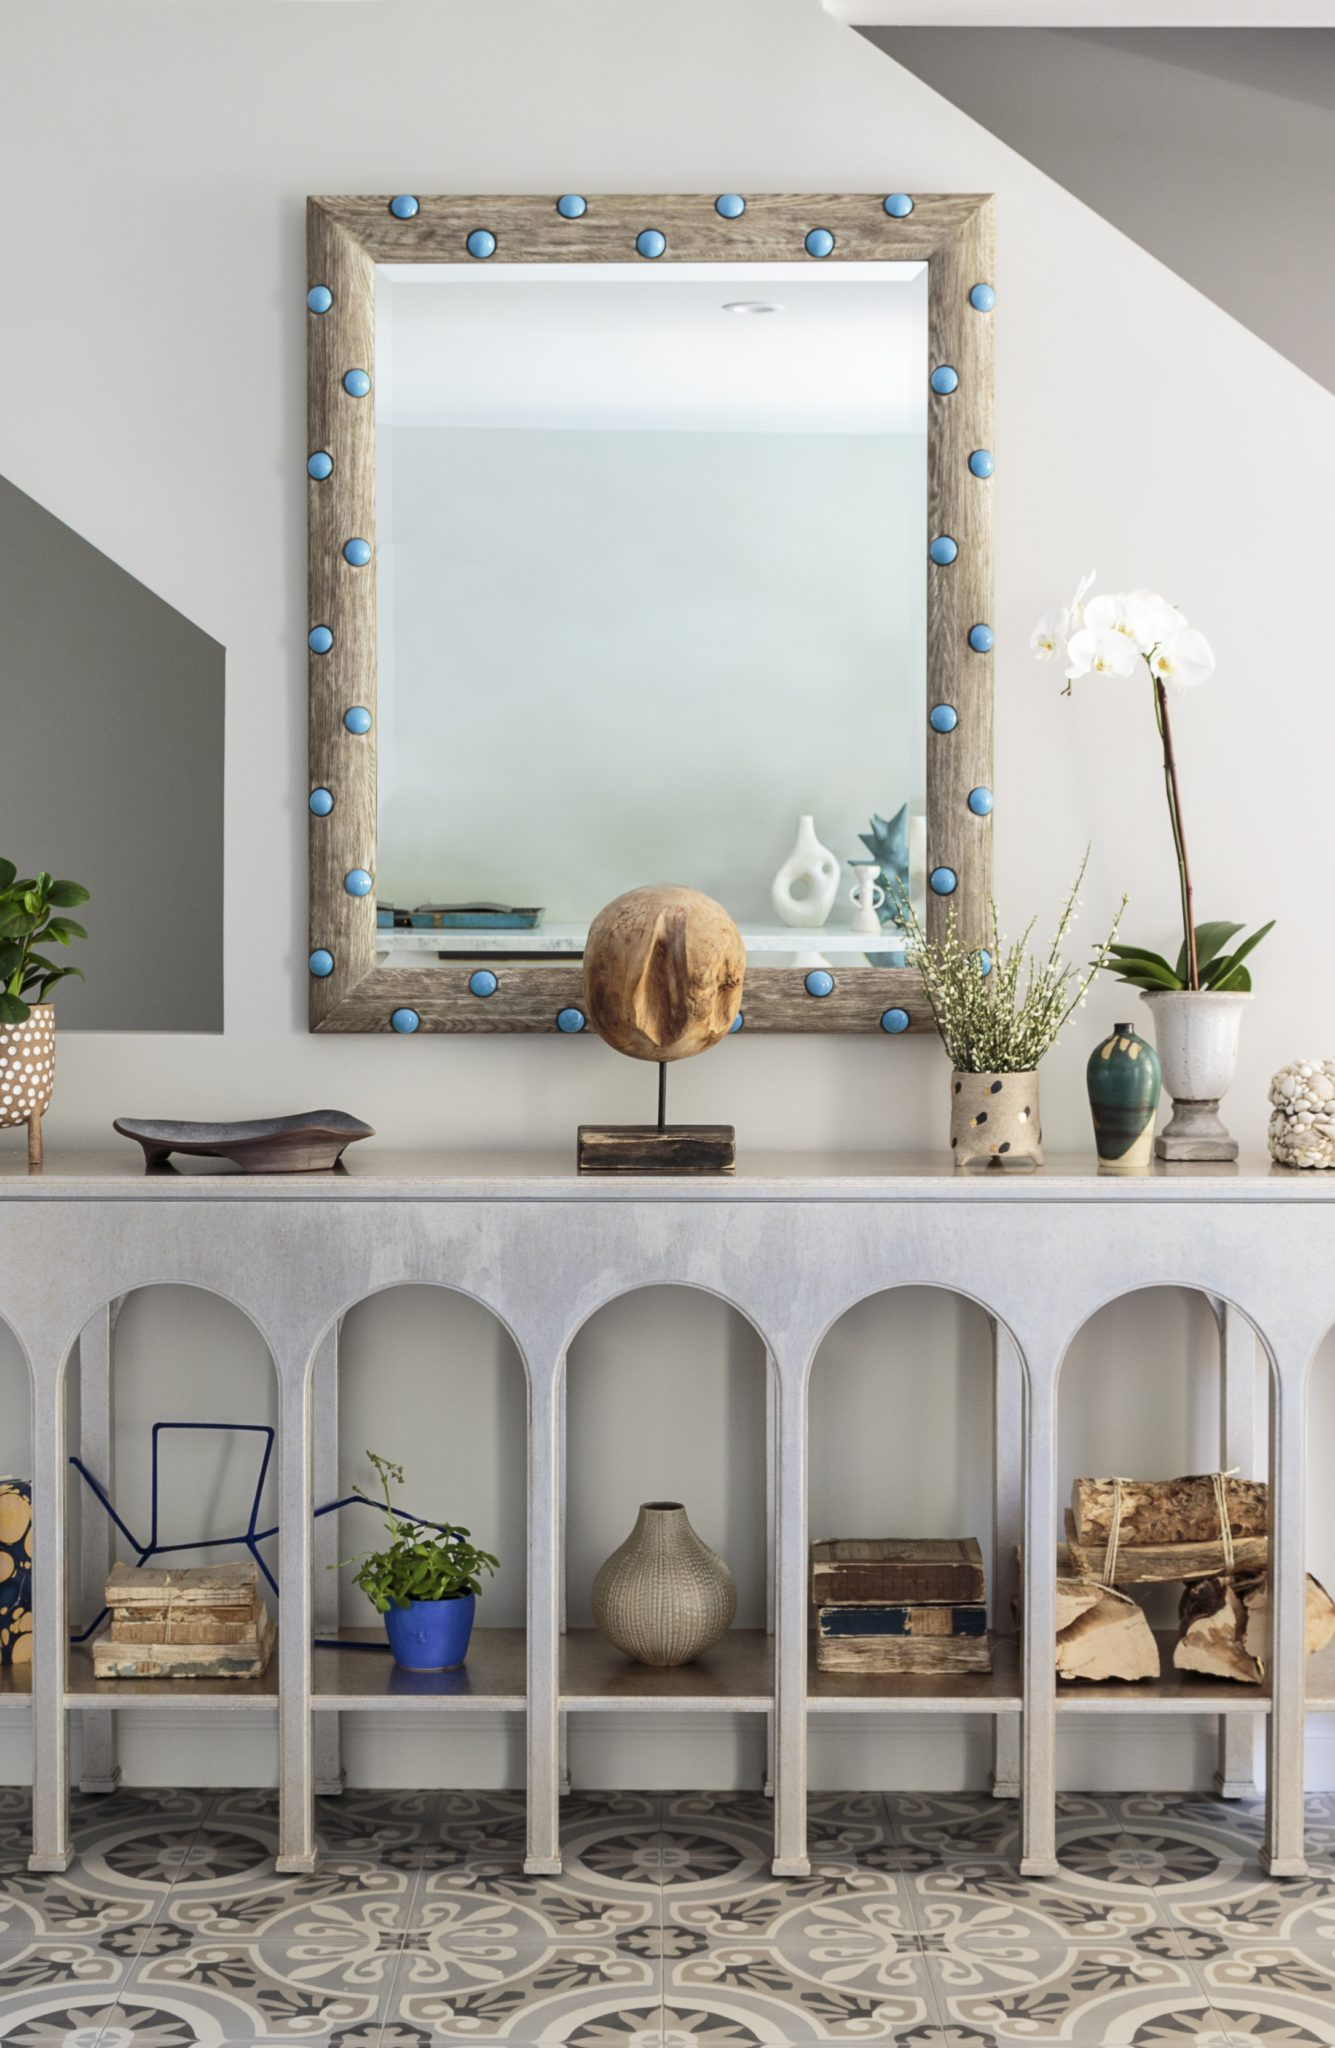 Polka dot mirror and arches make a statement in this entry by Bronwyn Poole by Touch Interiors